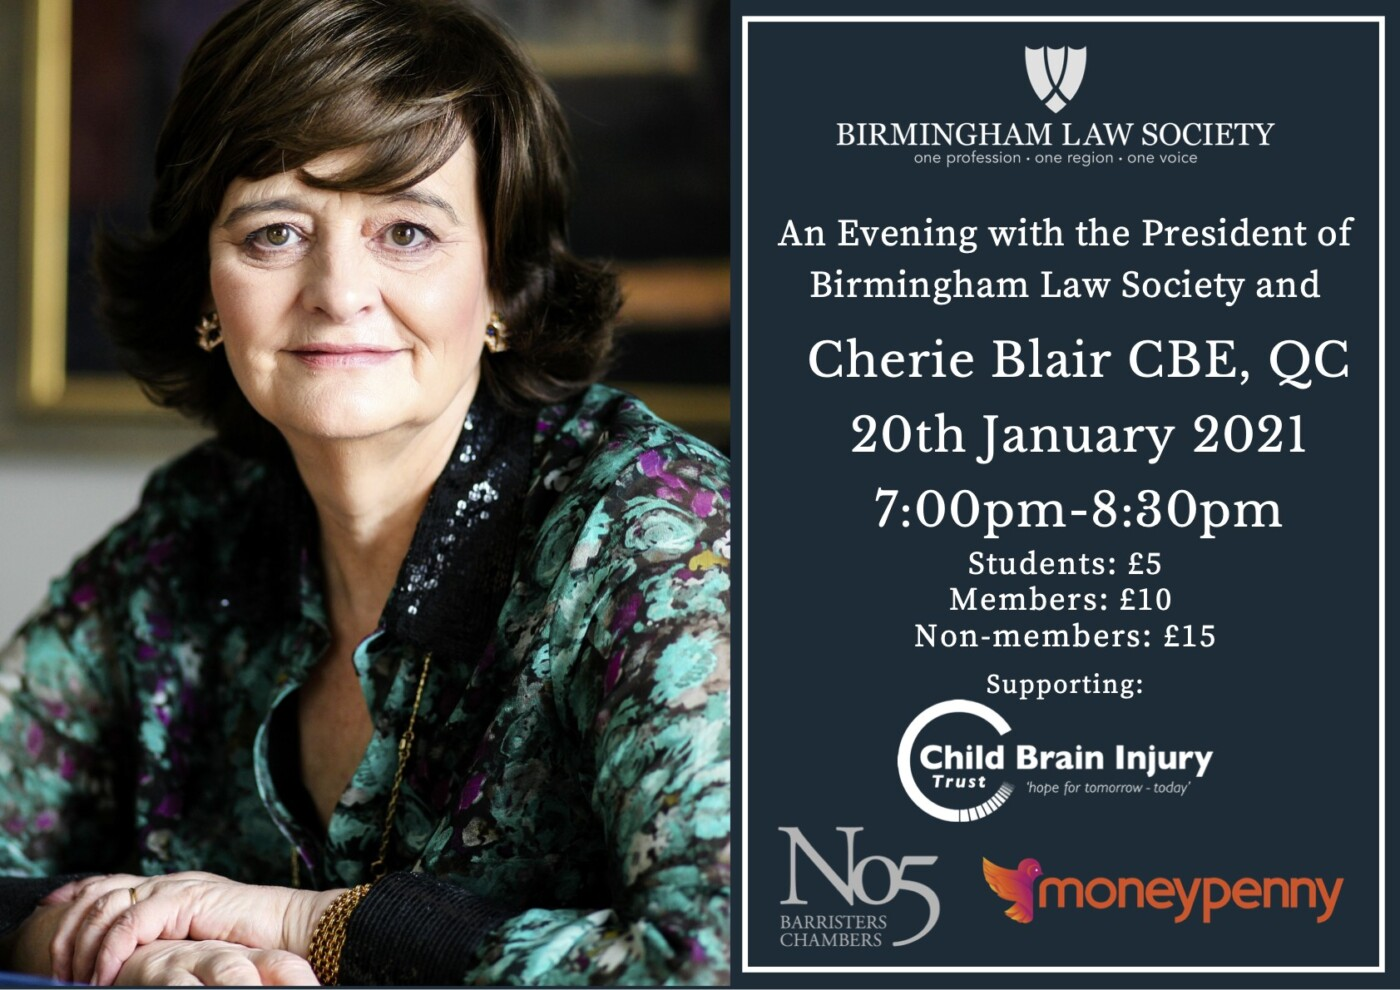 AN EVENING WITH THE PRESIDENT OF BIRMINGHAM LAW SOCIETY AND CHERIE BLAIR CBE, QC